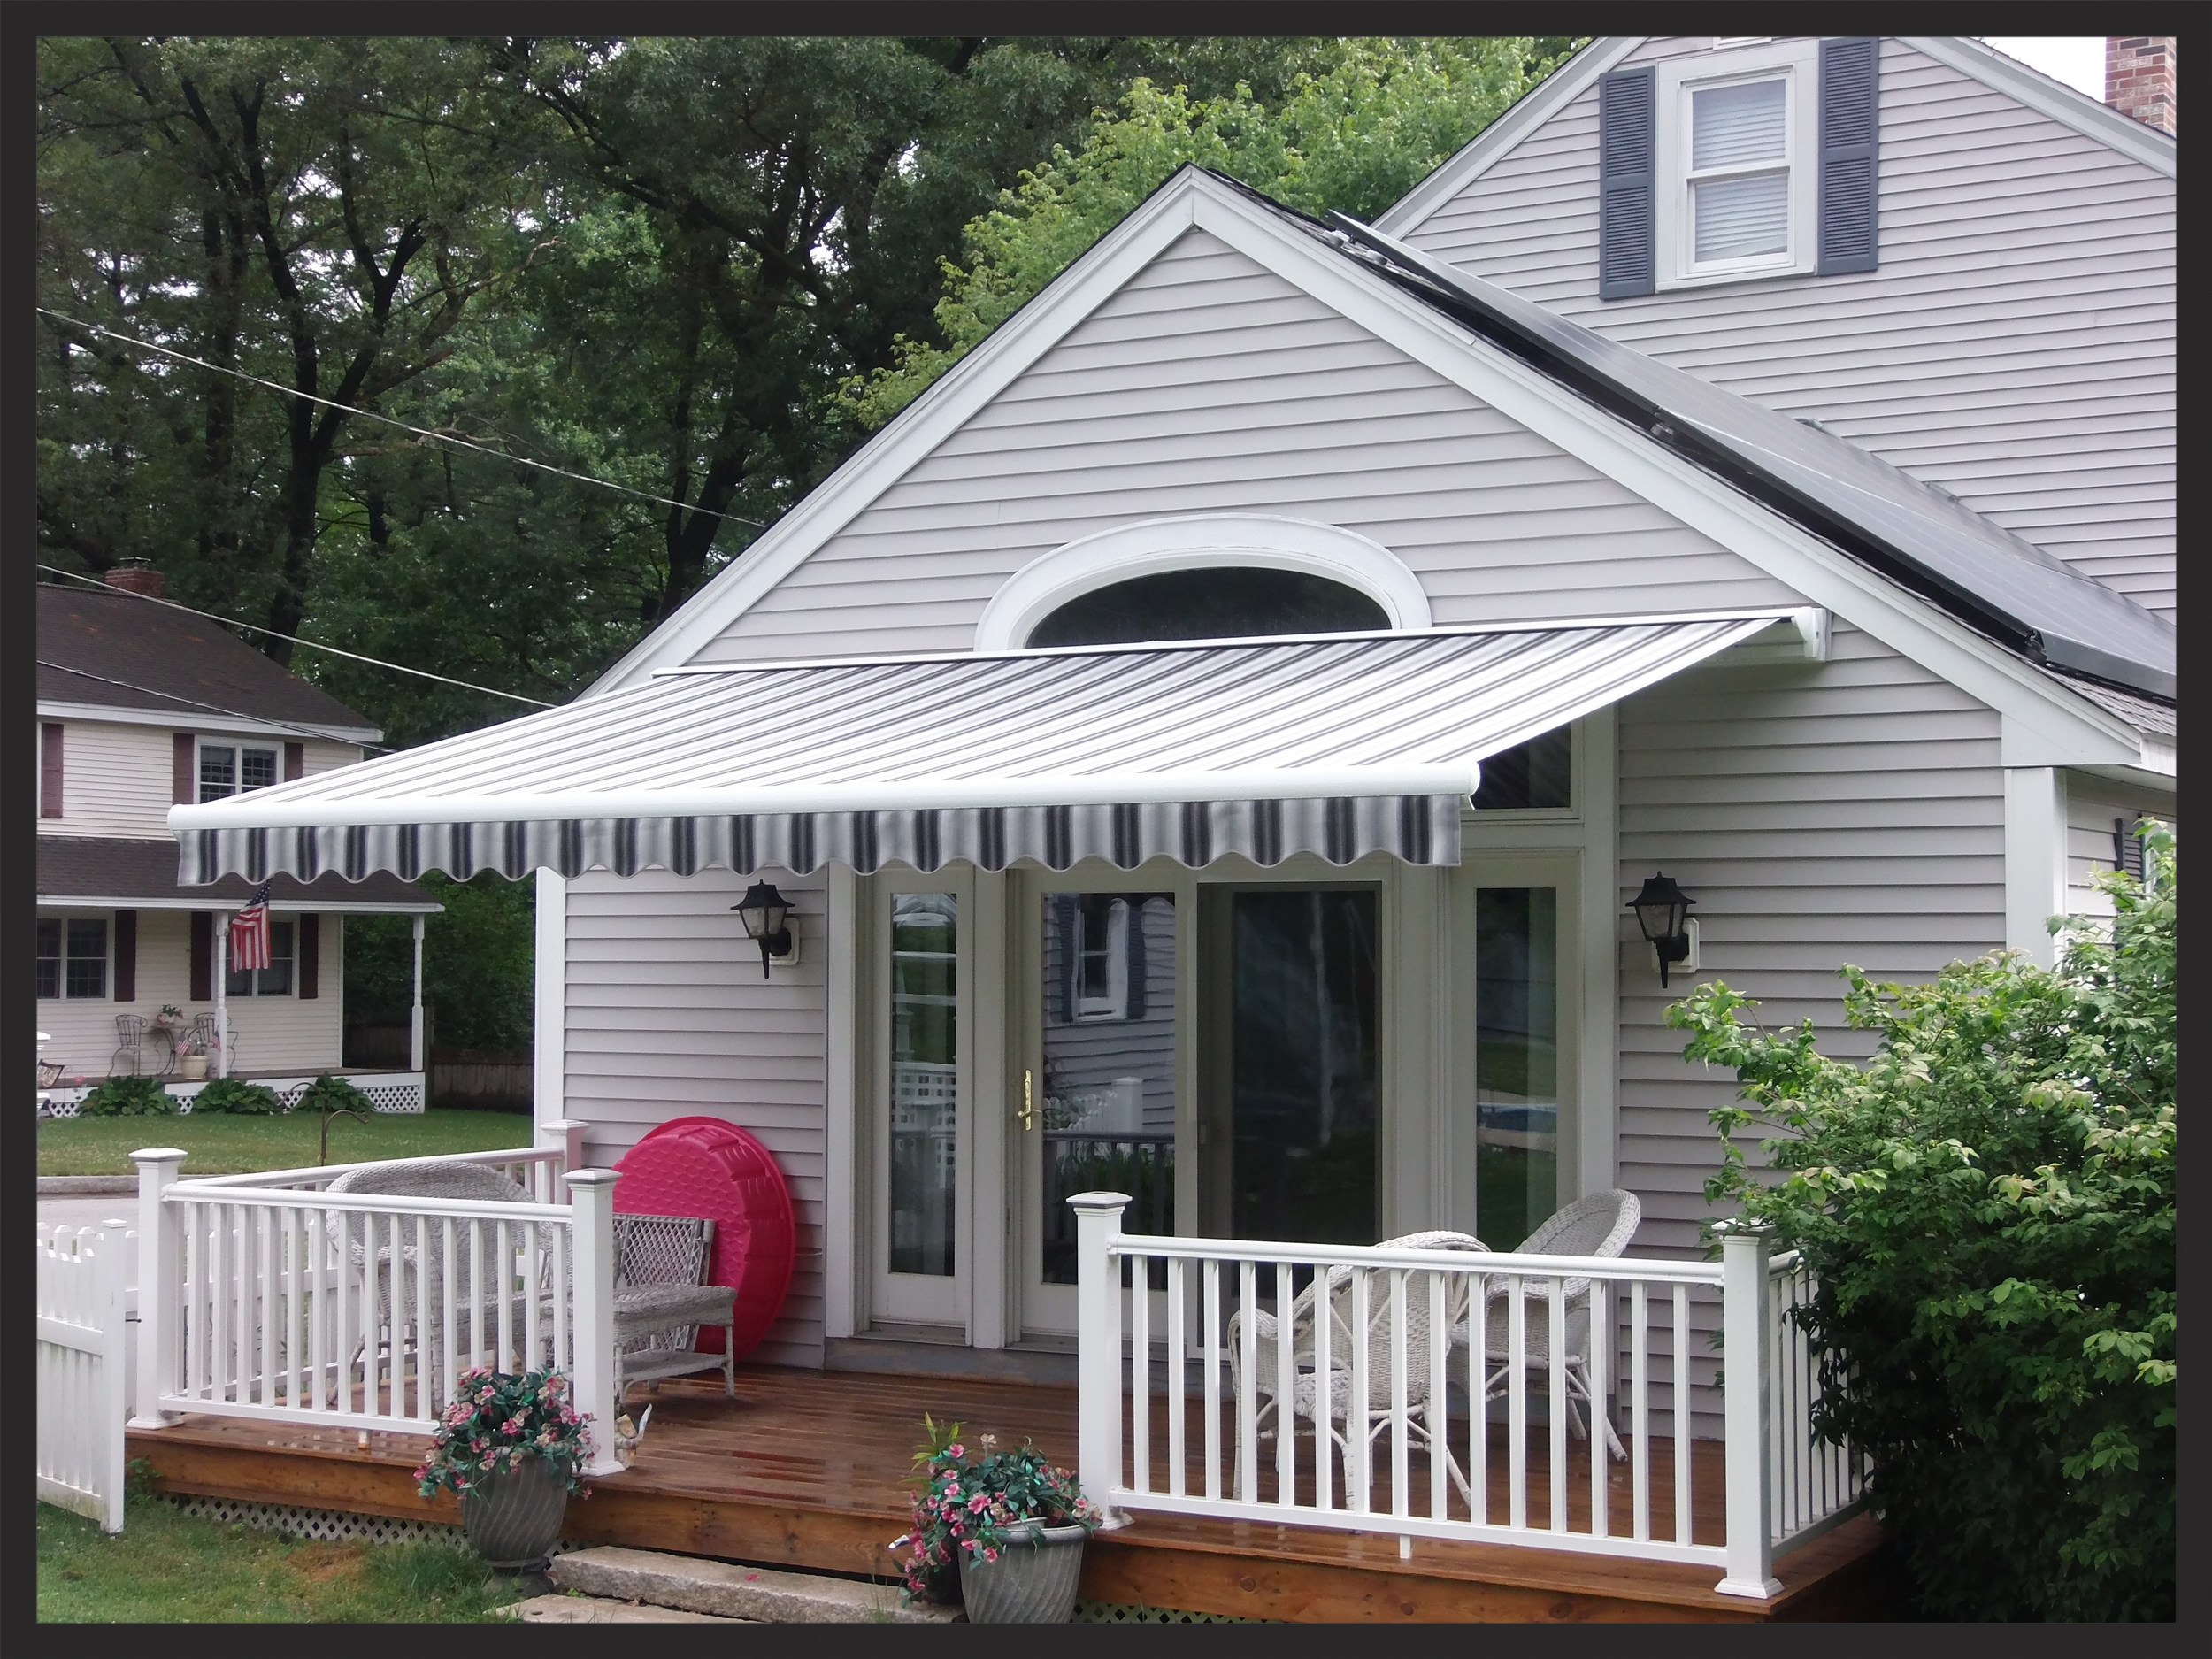 Retractable awning , Chelmsford, MA